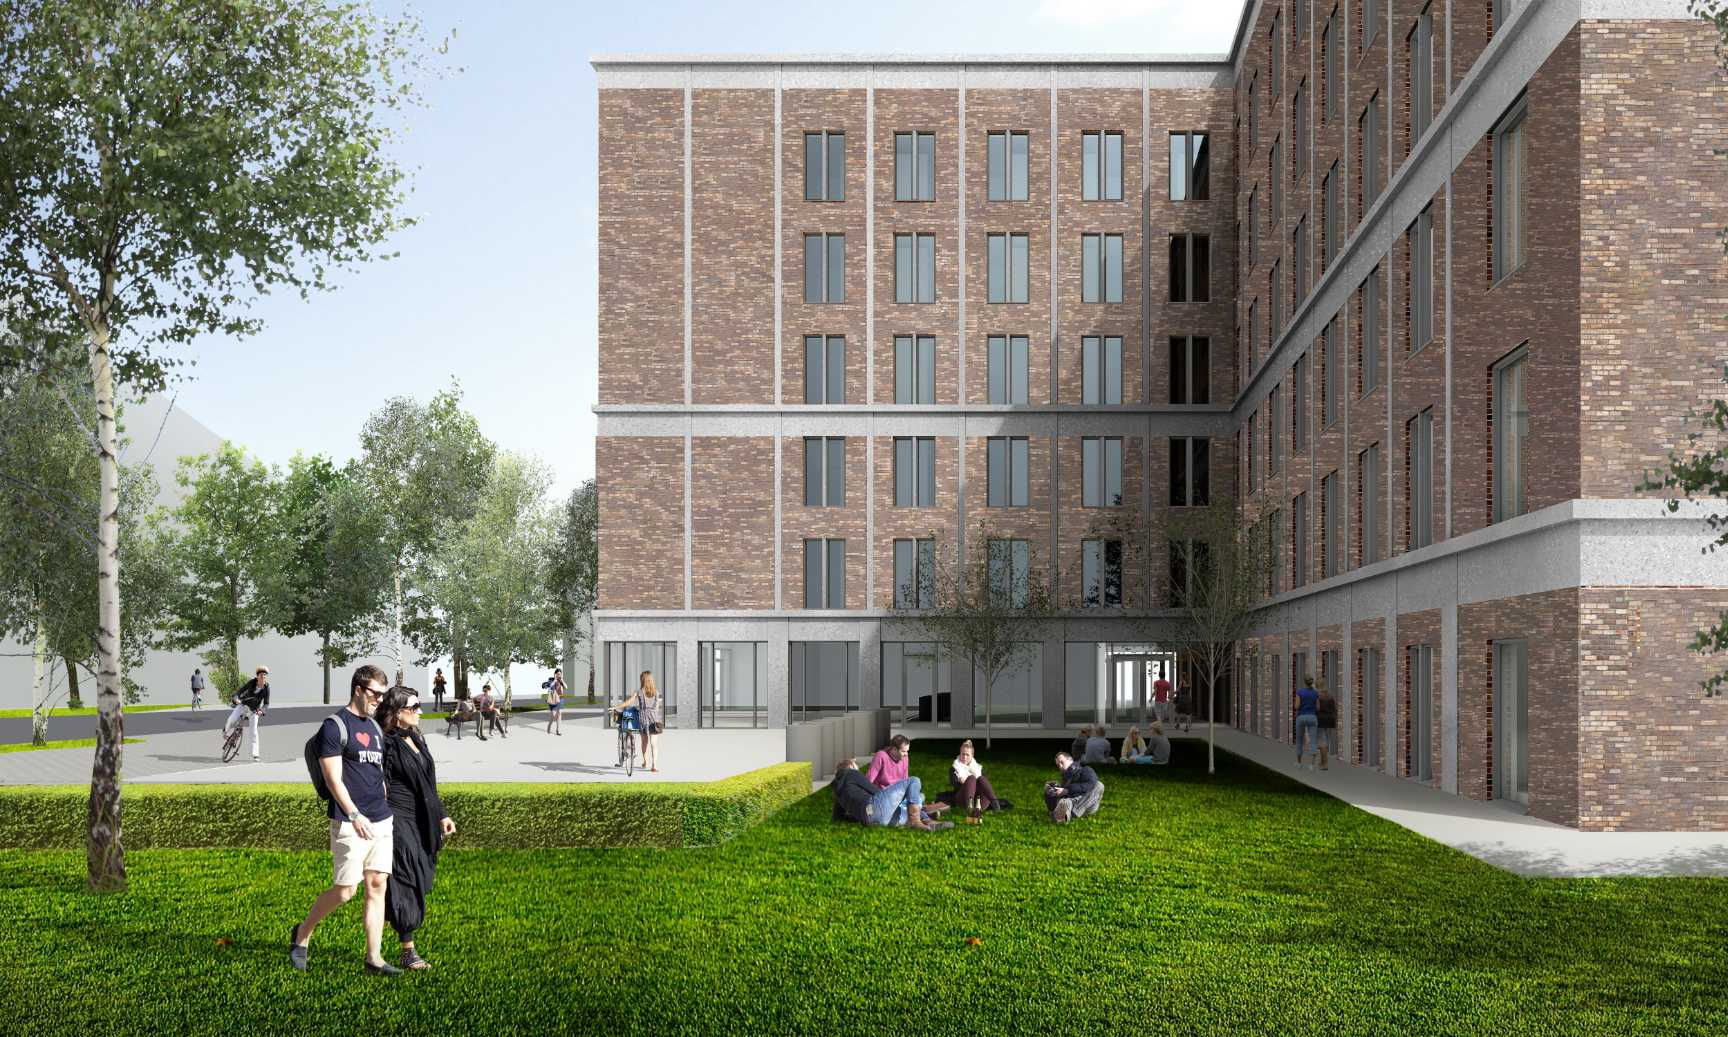 Purchase of 198 bed student accommodation development site on London Road, Edinburgh